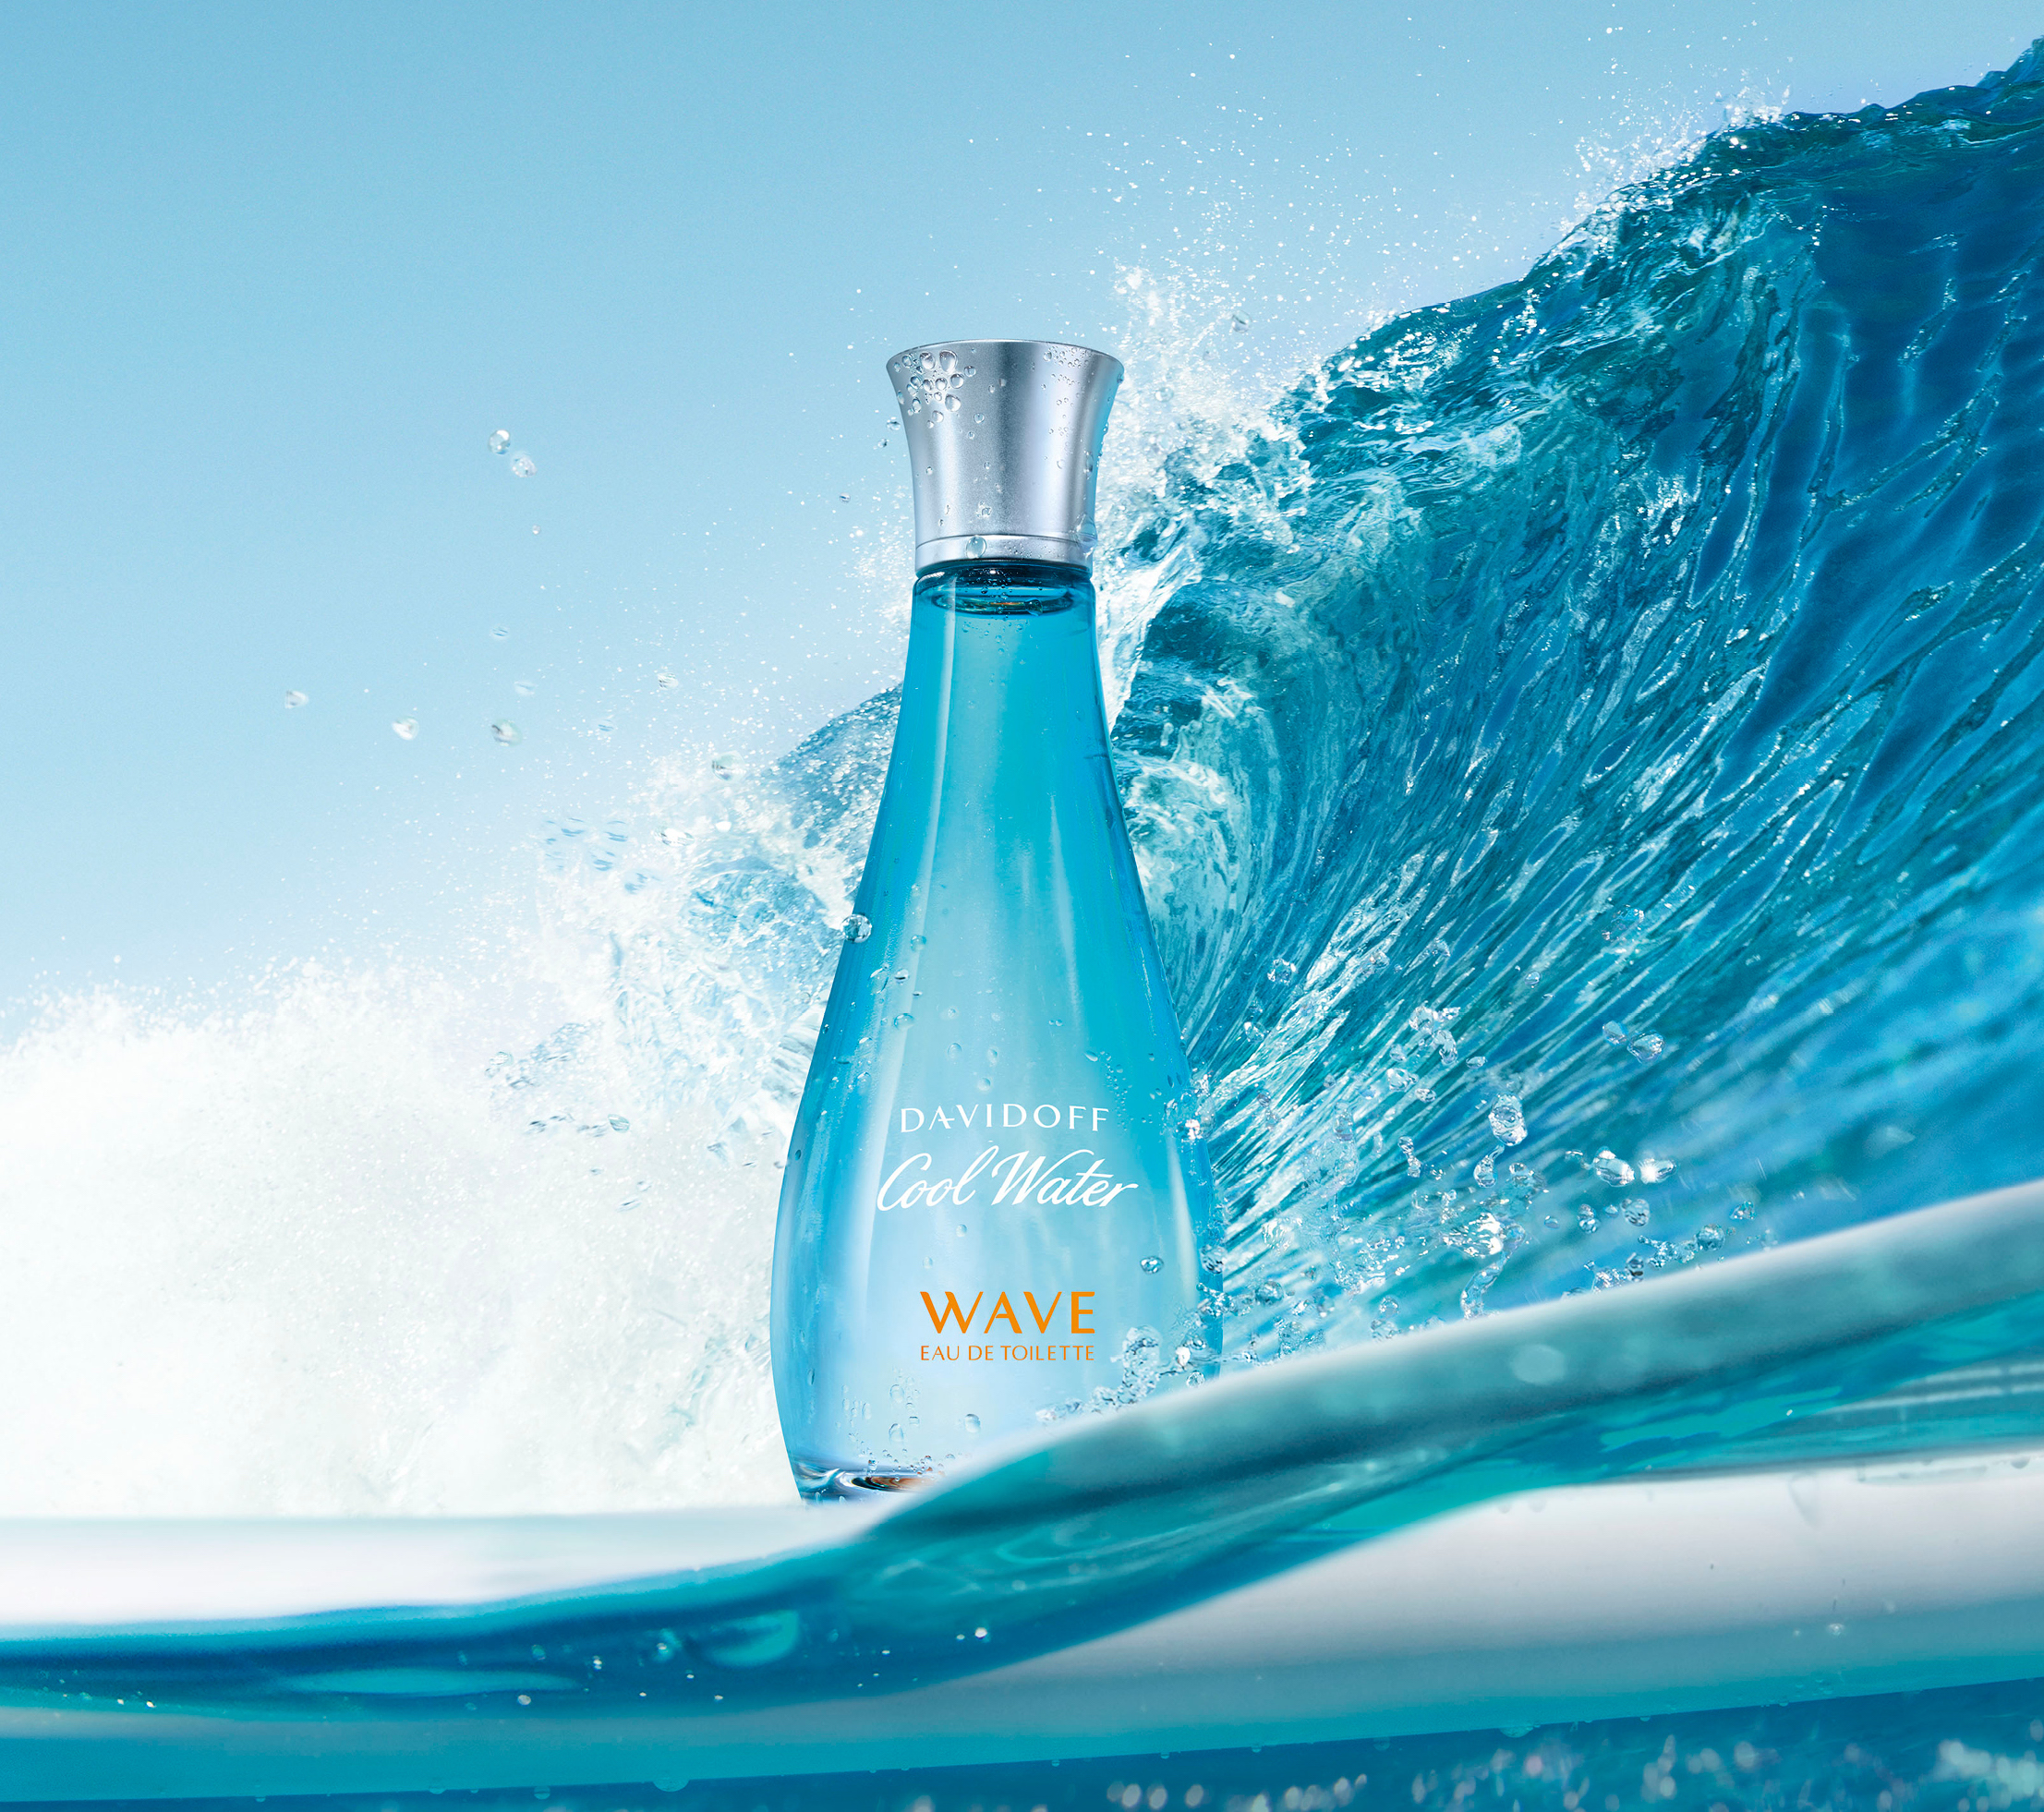 Cool Water Wave Eau De Toilette Davidoff